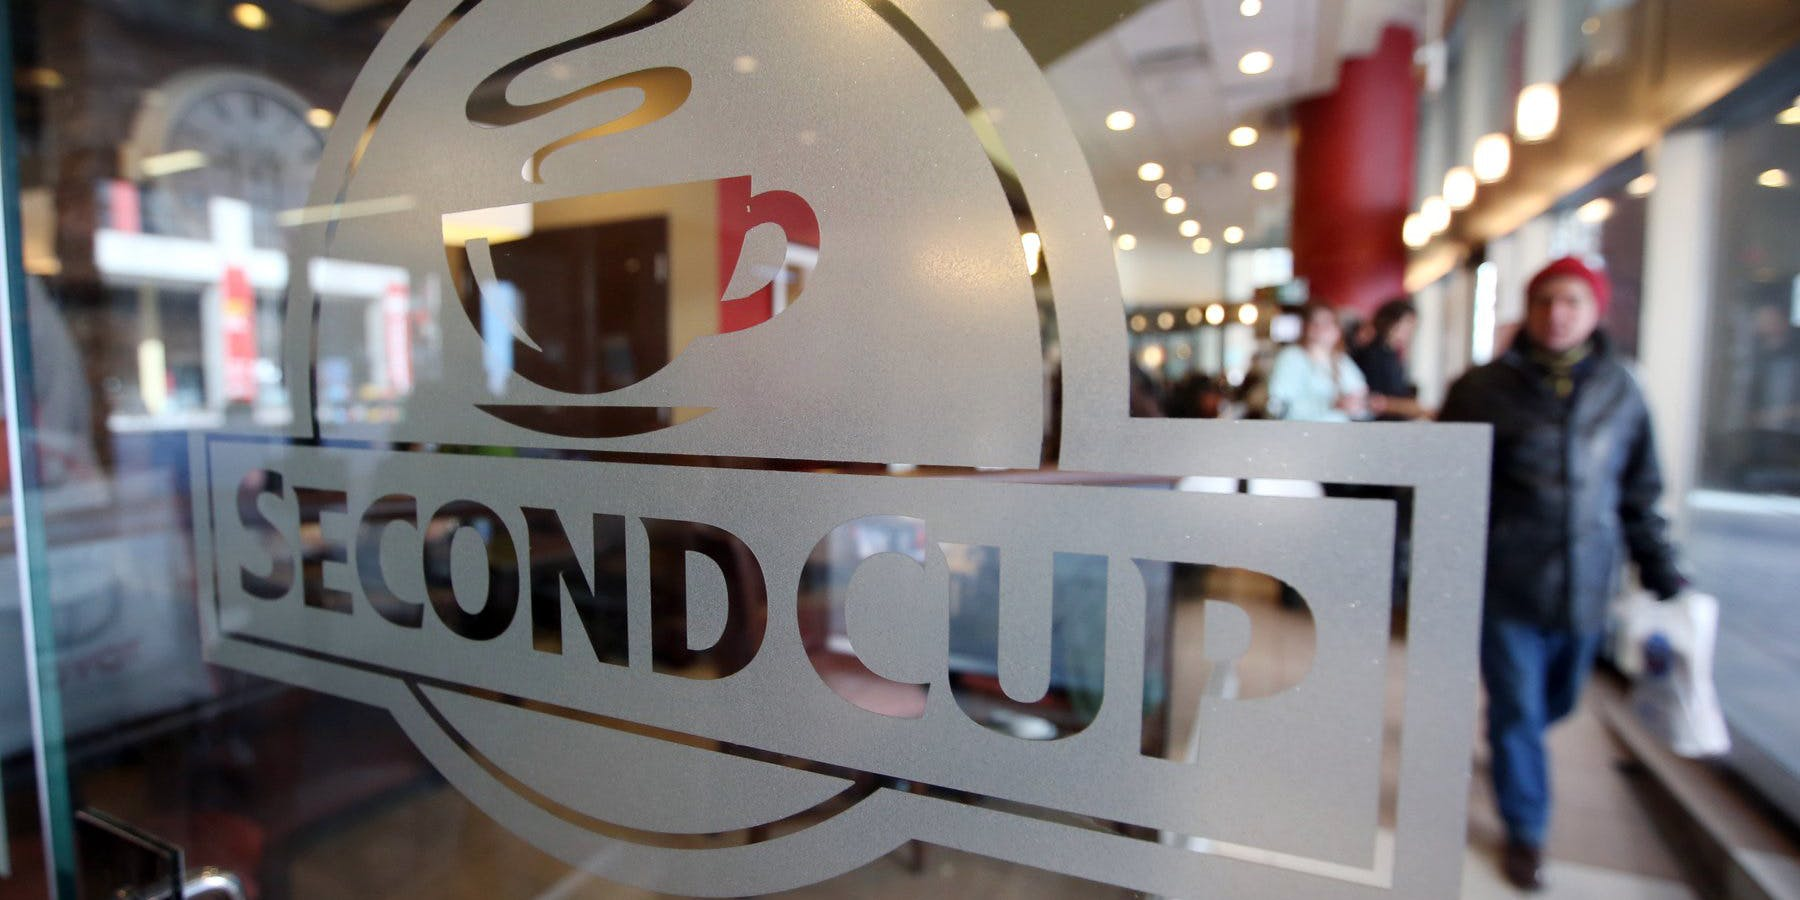 Worldwide Coffee Chain Second Cup Pivots To Cannabis